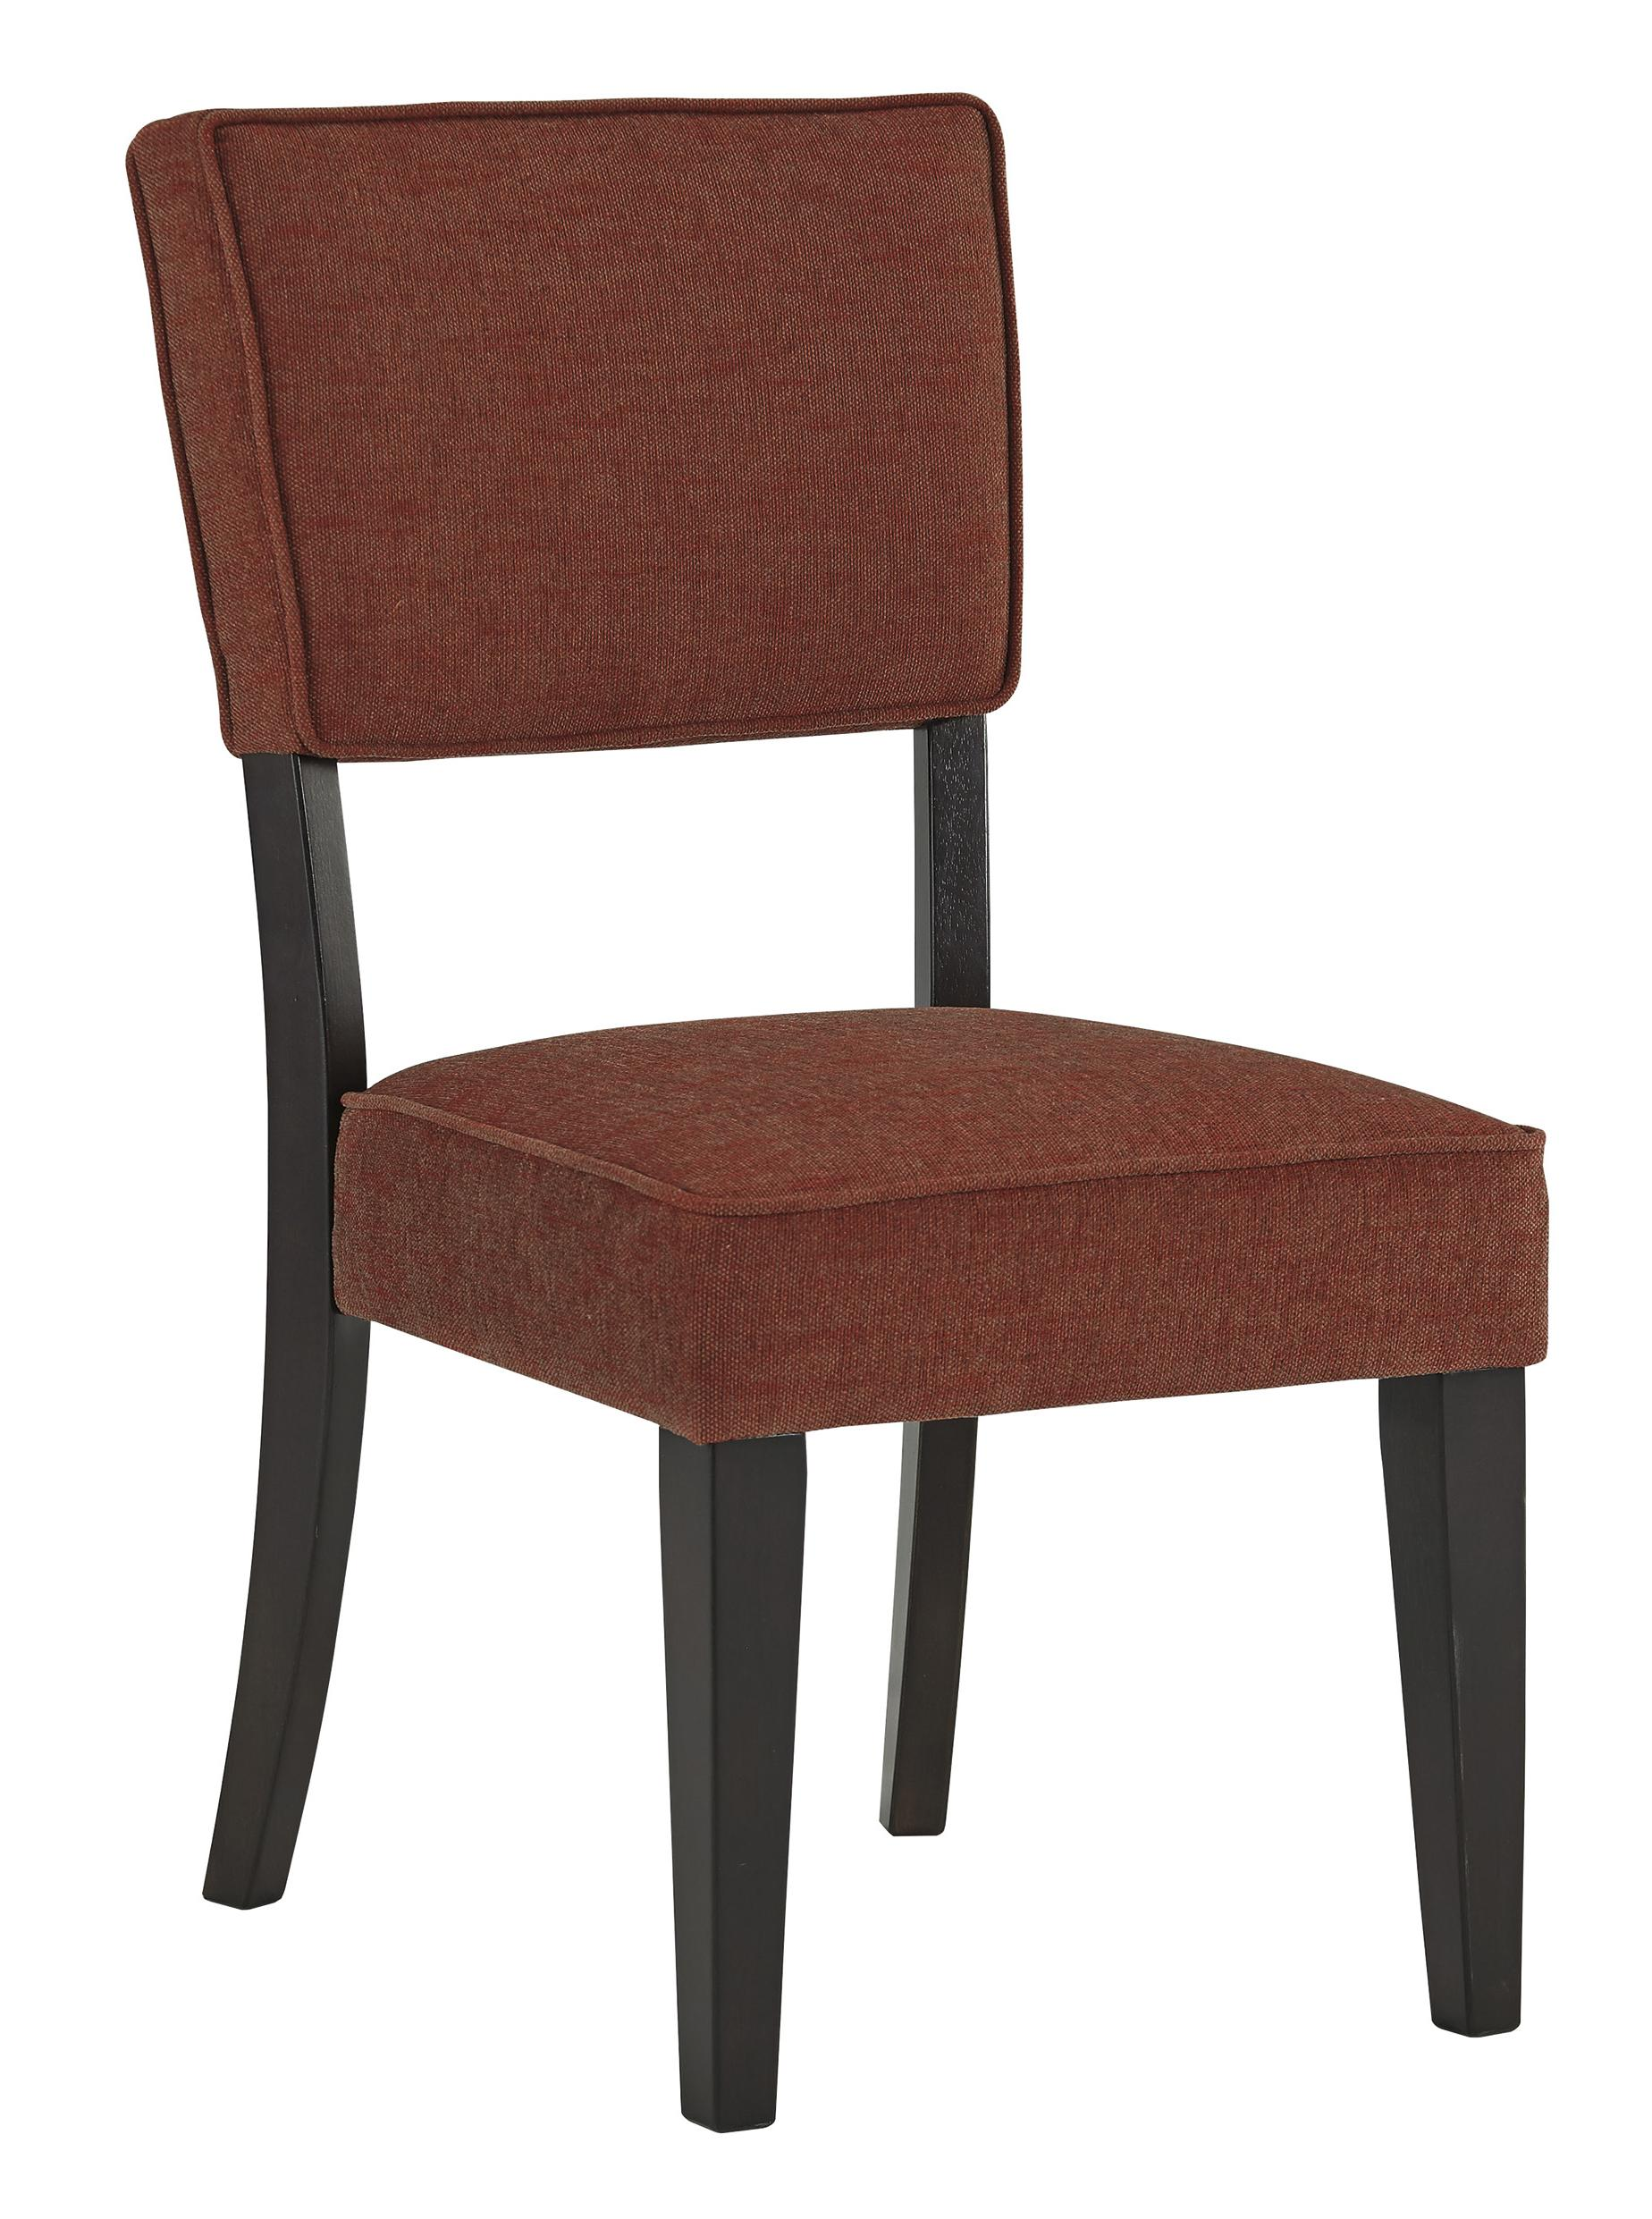 Signature Design by Ashley Gavelston Dining Upholstered Side Chair - Item Number: D532-04